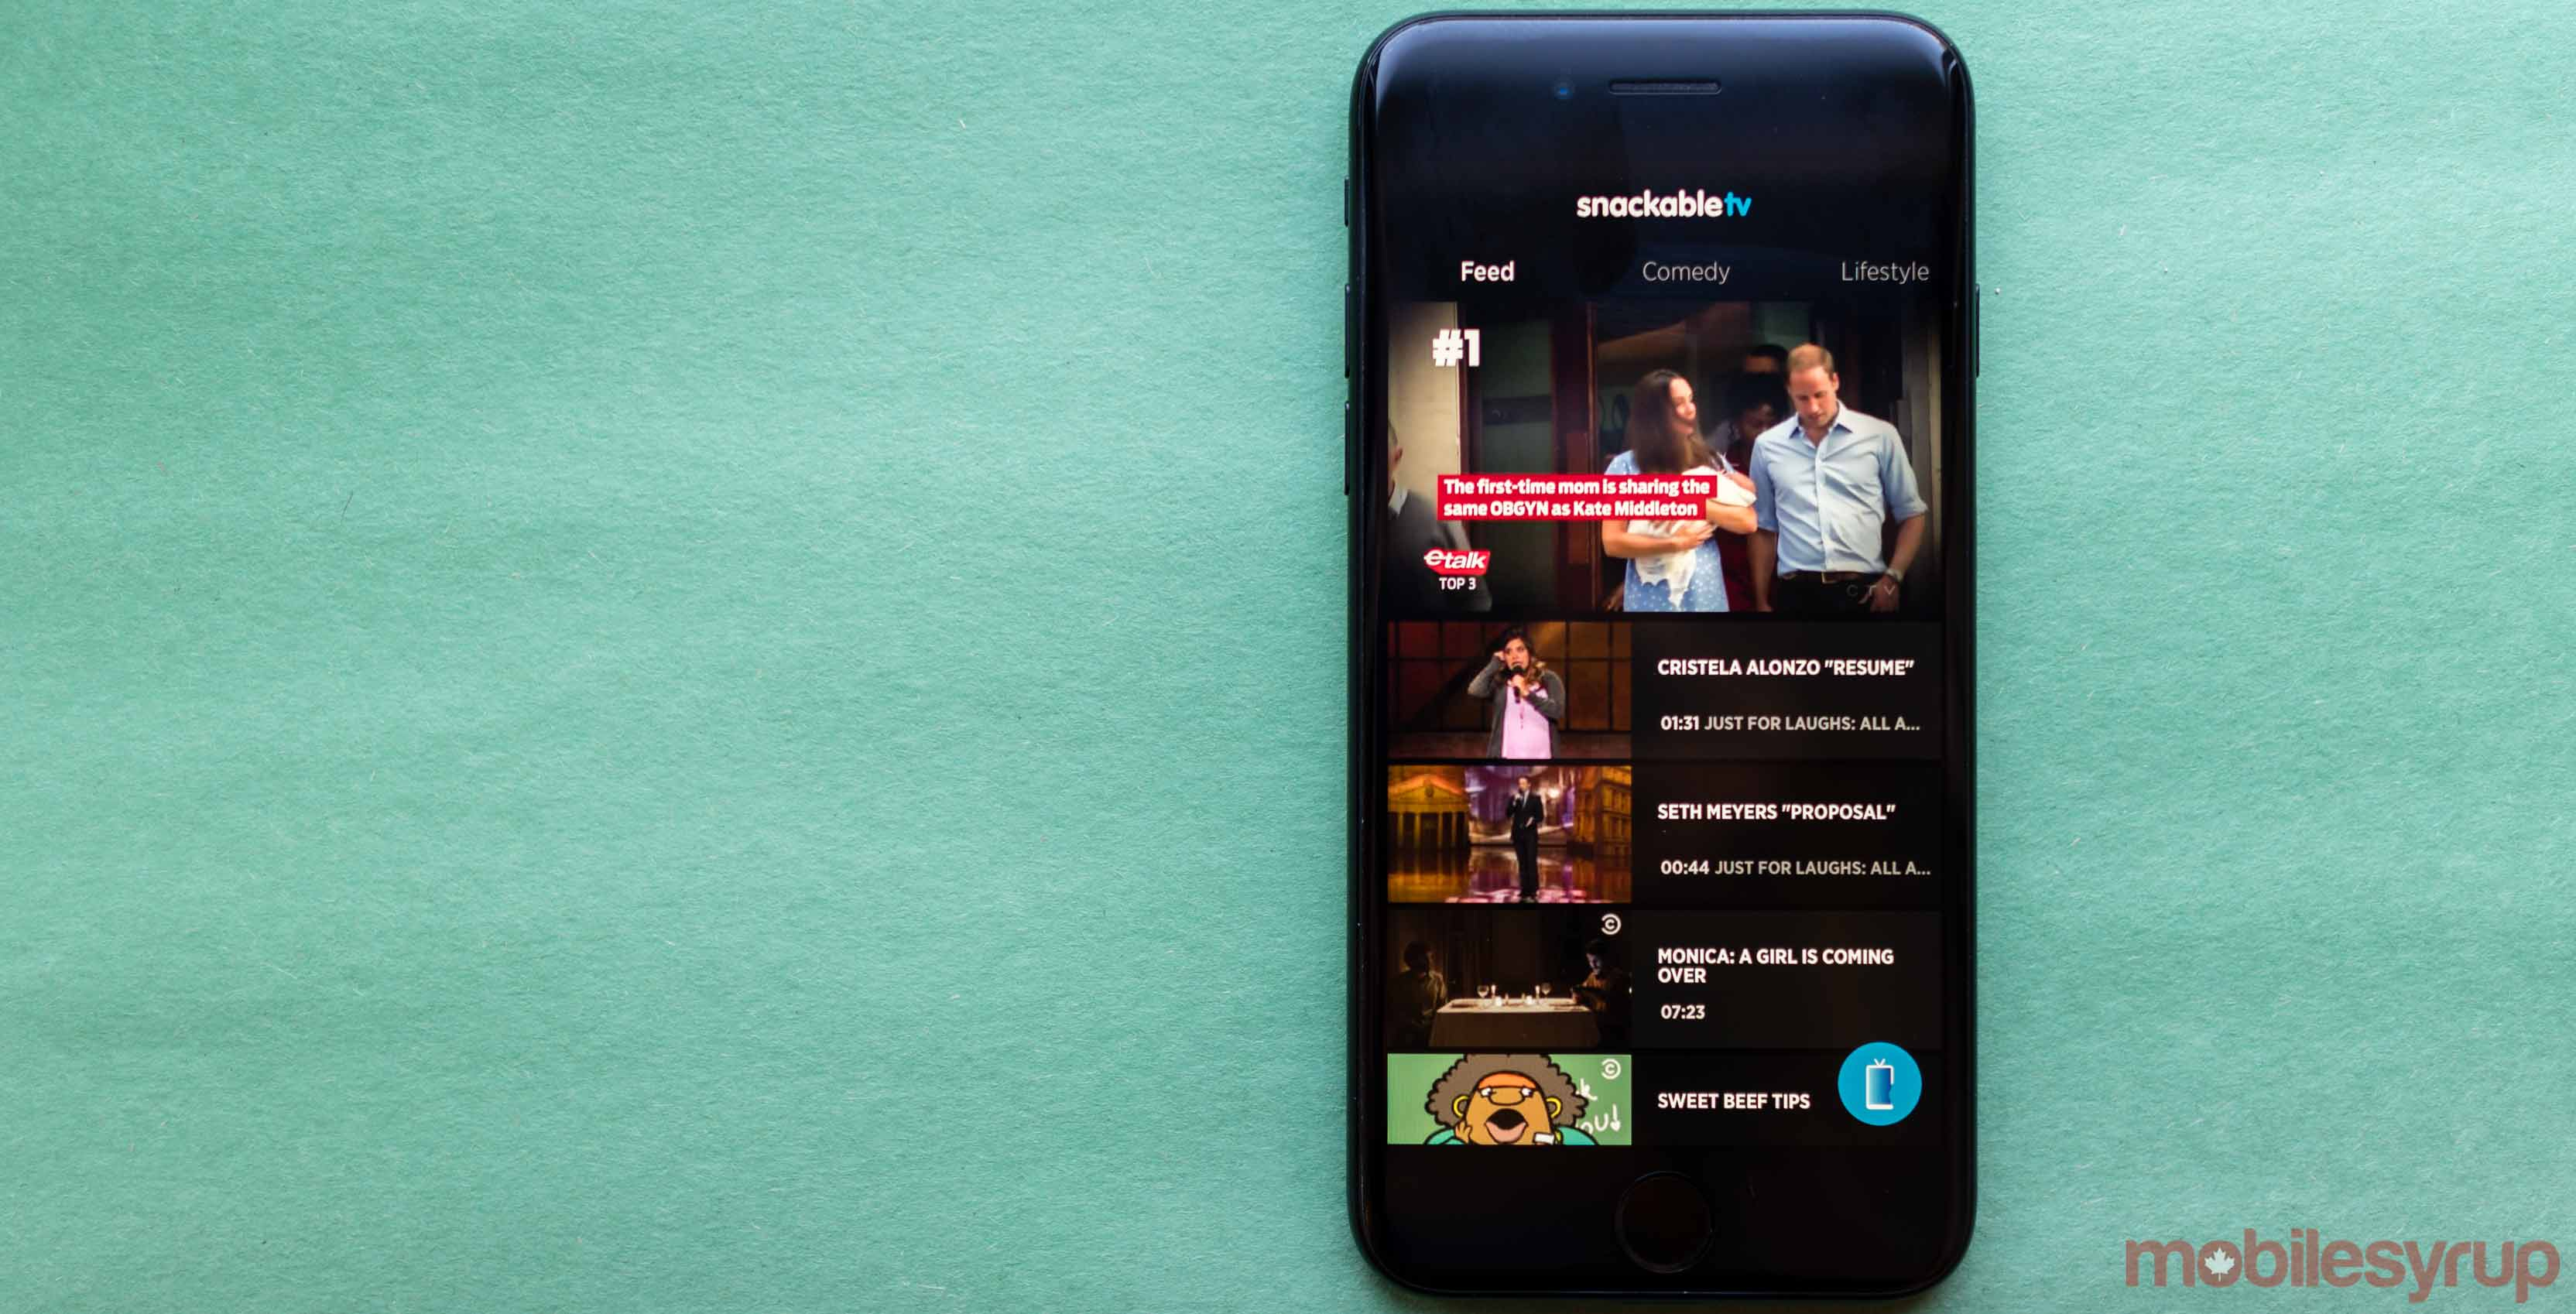 Bell goes live with SnackableTV app, its mobile-focused 'bite-sized entertainment' VOD service